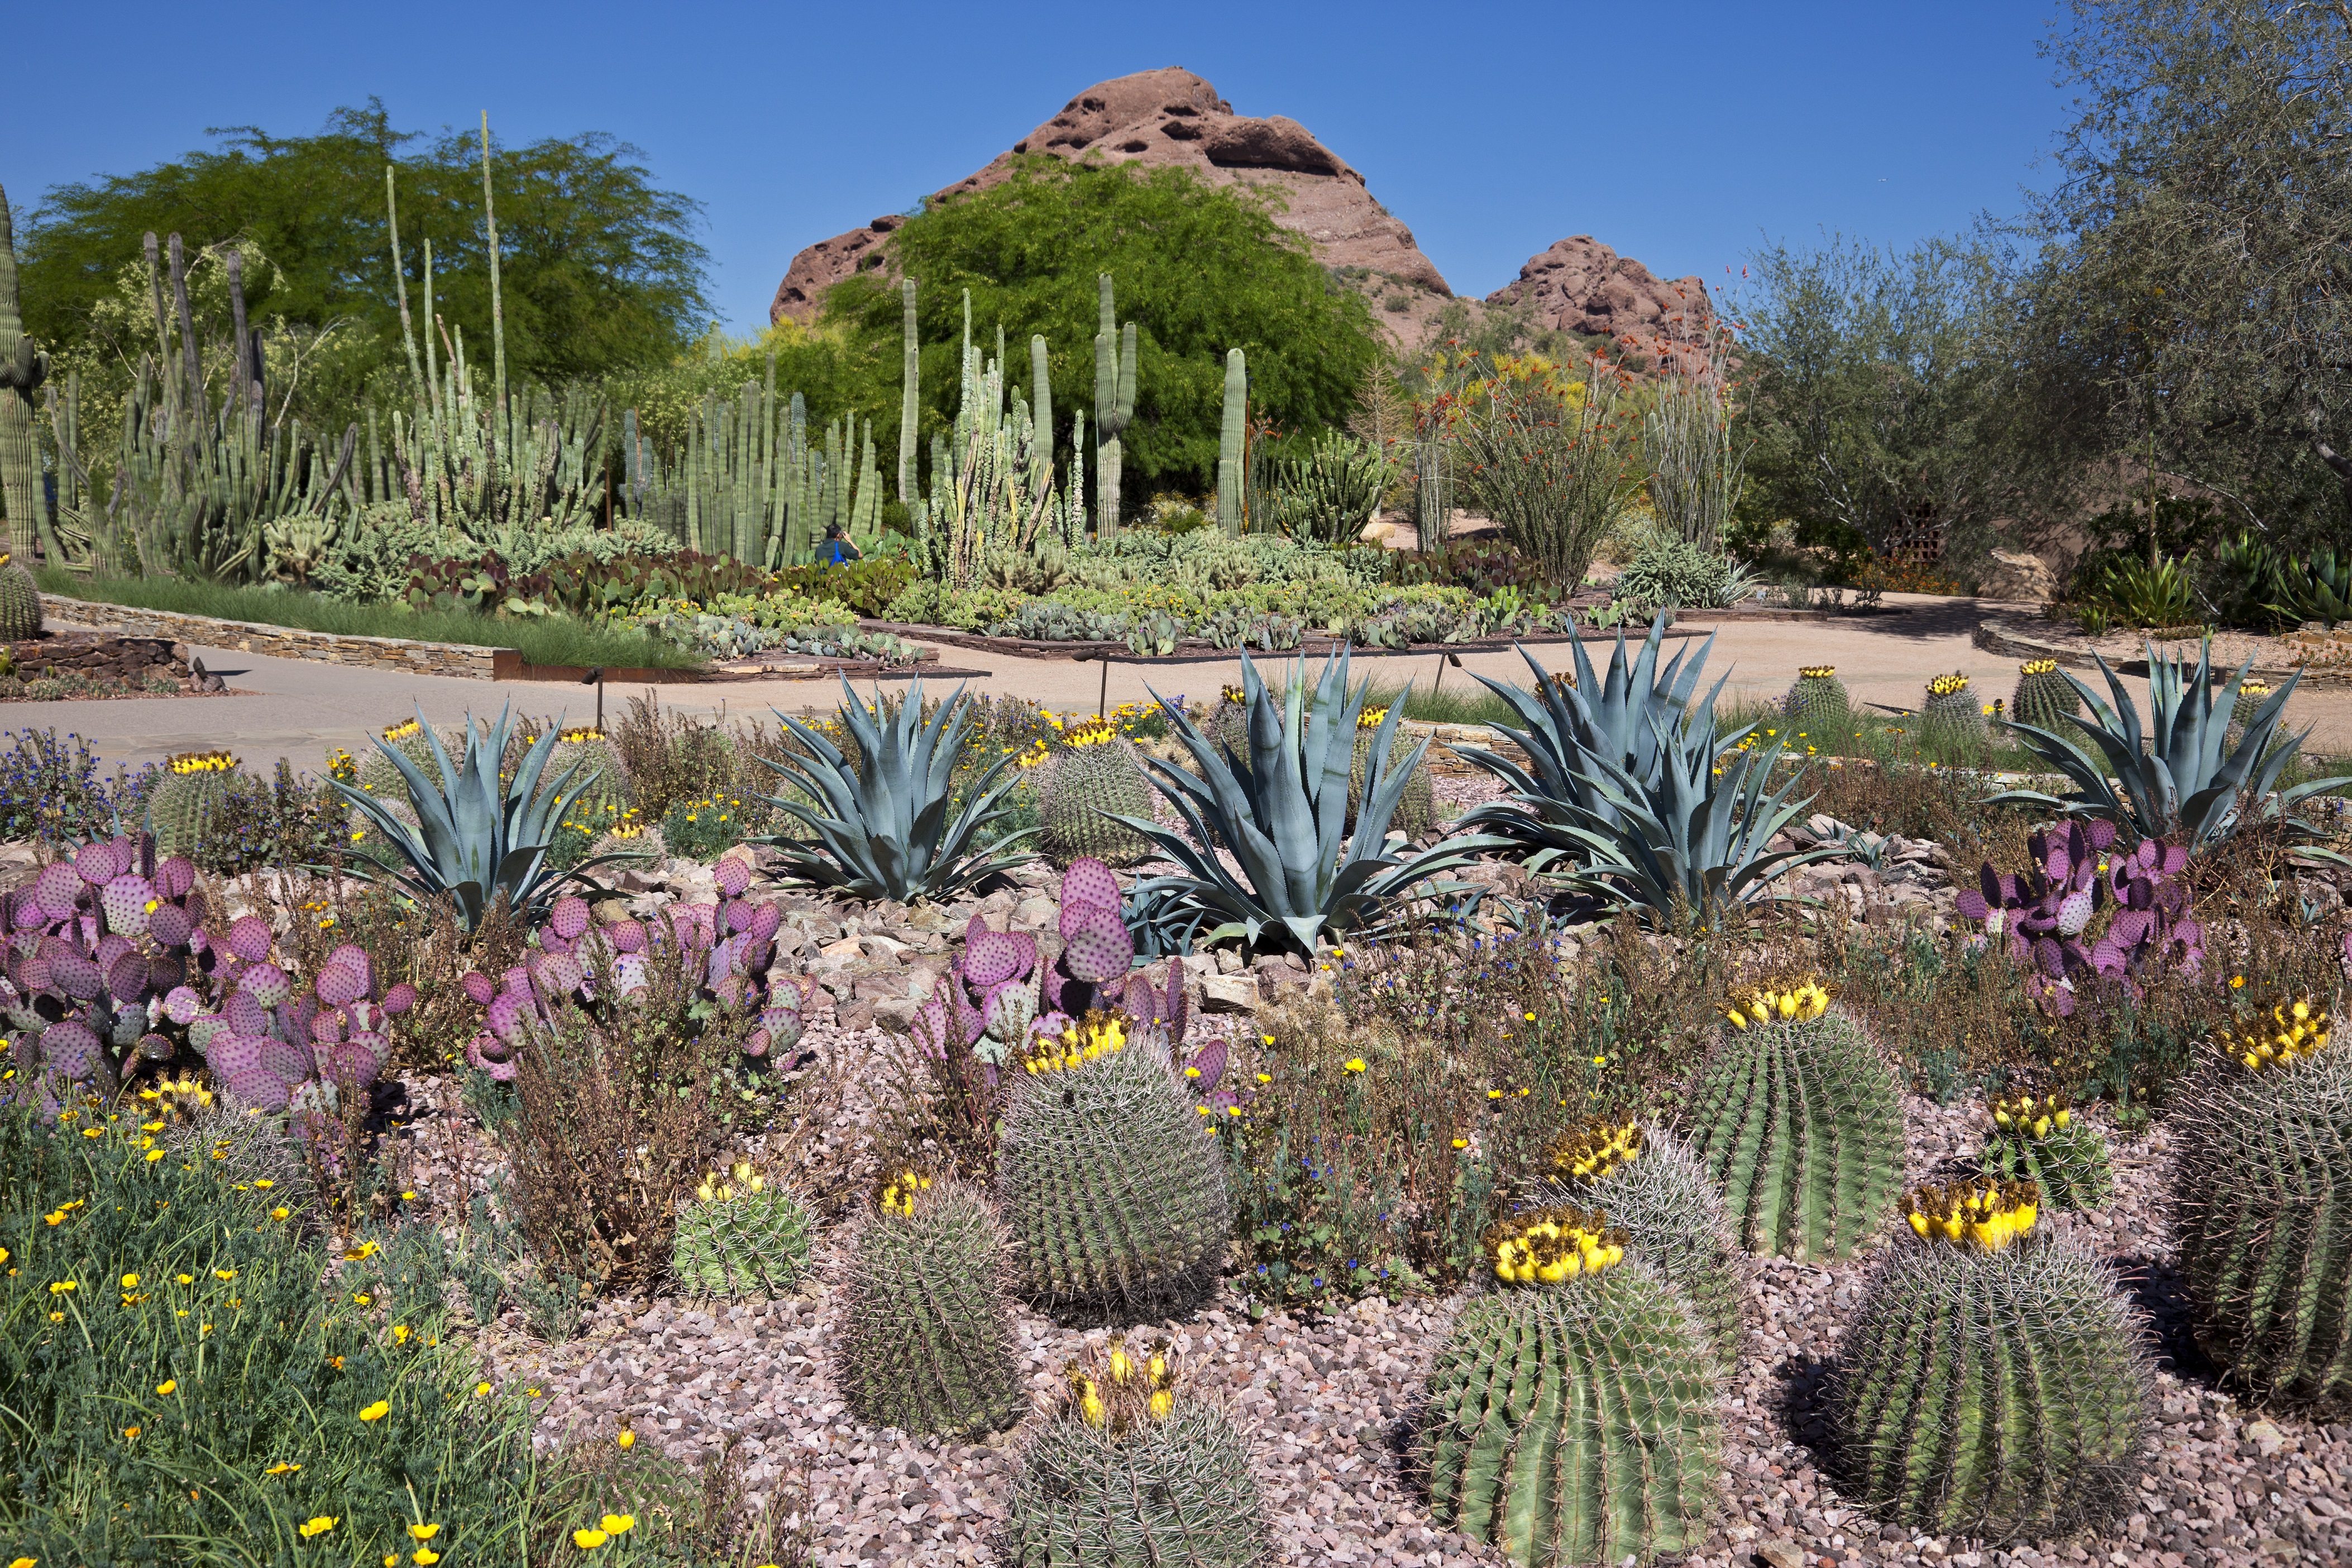 Botanical Gardens in the Southwest United States